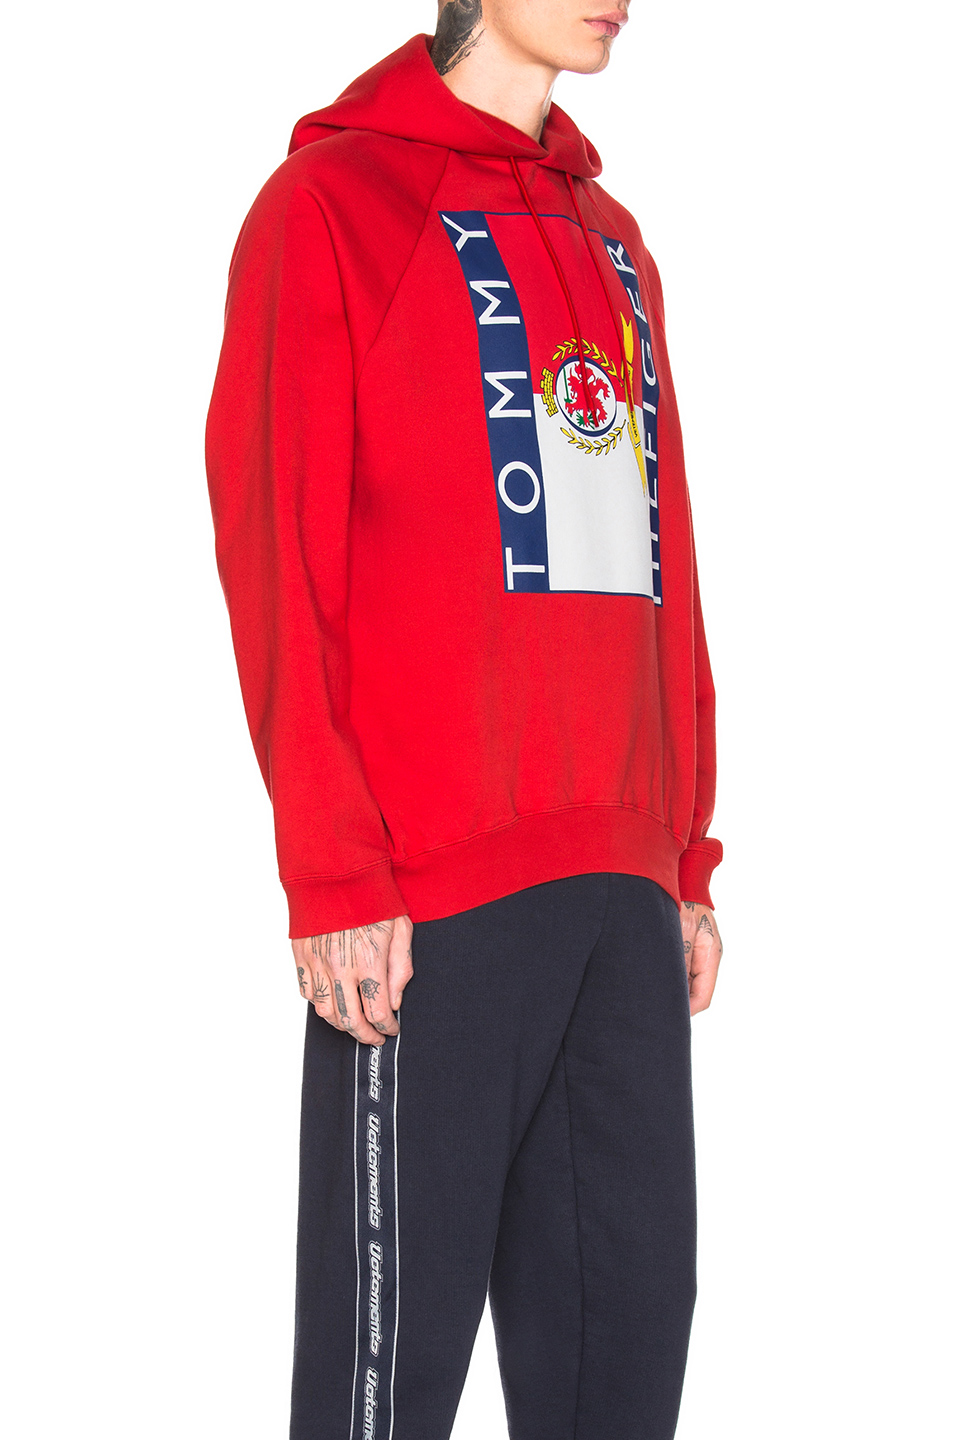 The Vetements x Tommy Hilfiger Collection Scheduled to Drop